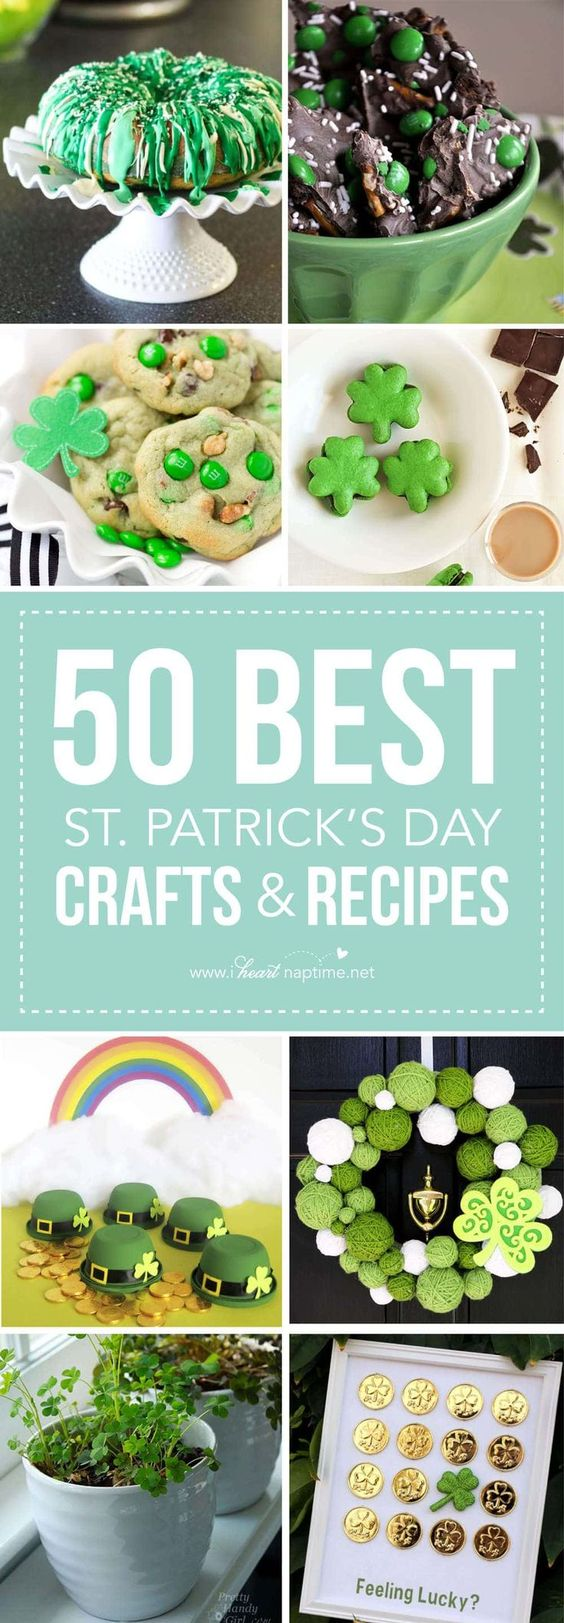 50 BEST Saint Patrick's Day Crafts and Recipes